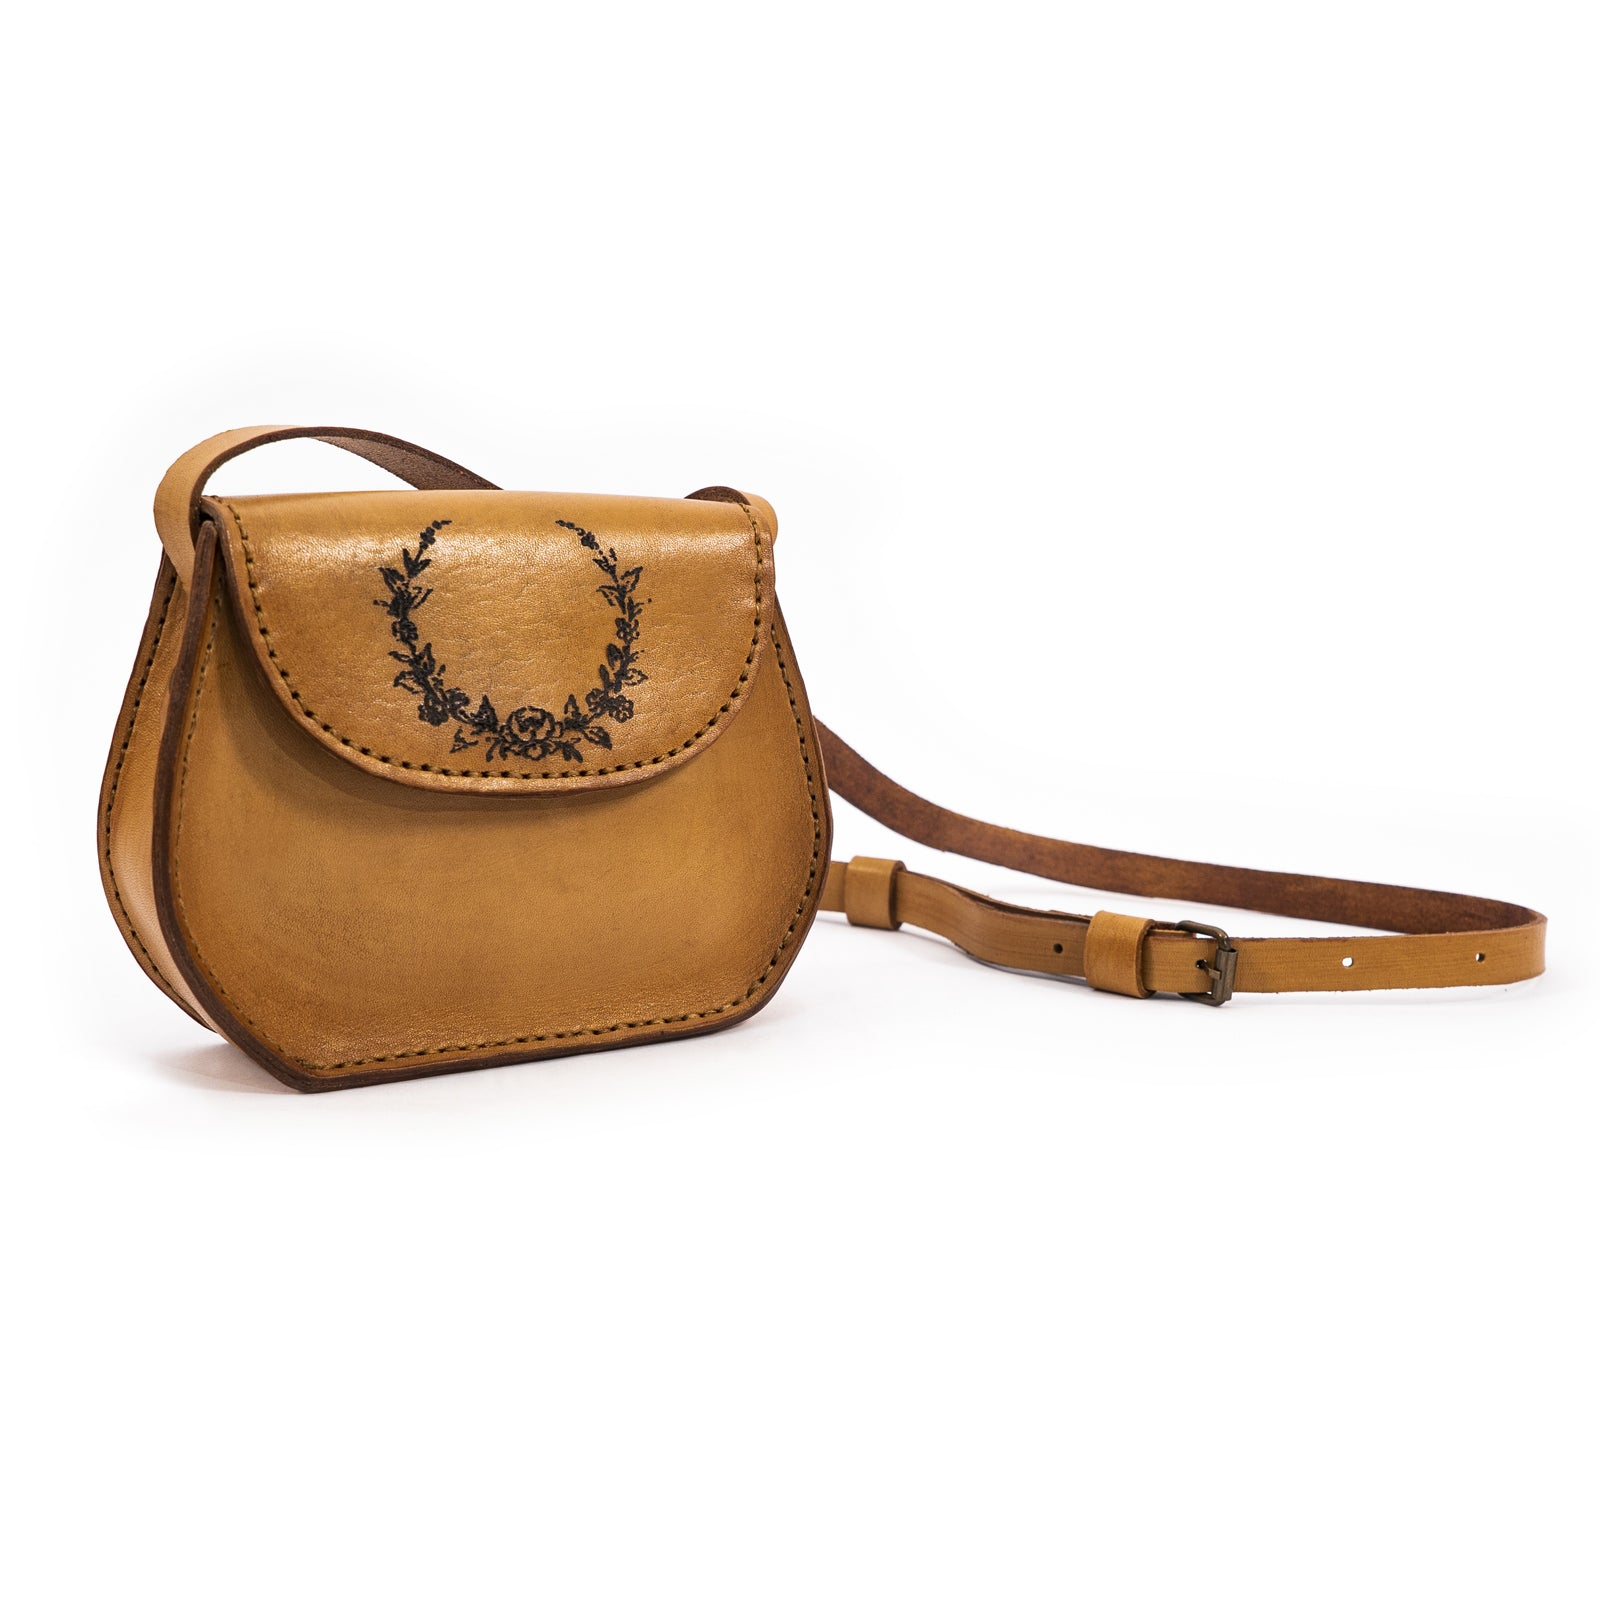 Derifix Schilda Women's Handmade Leather Bag